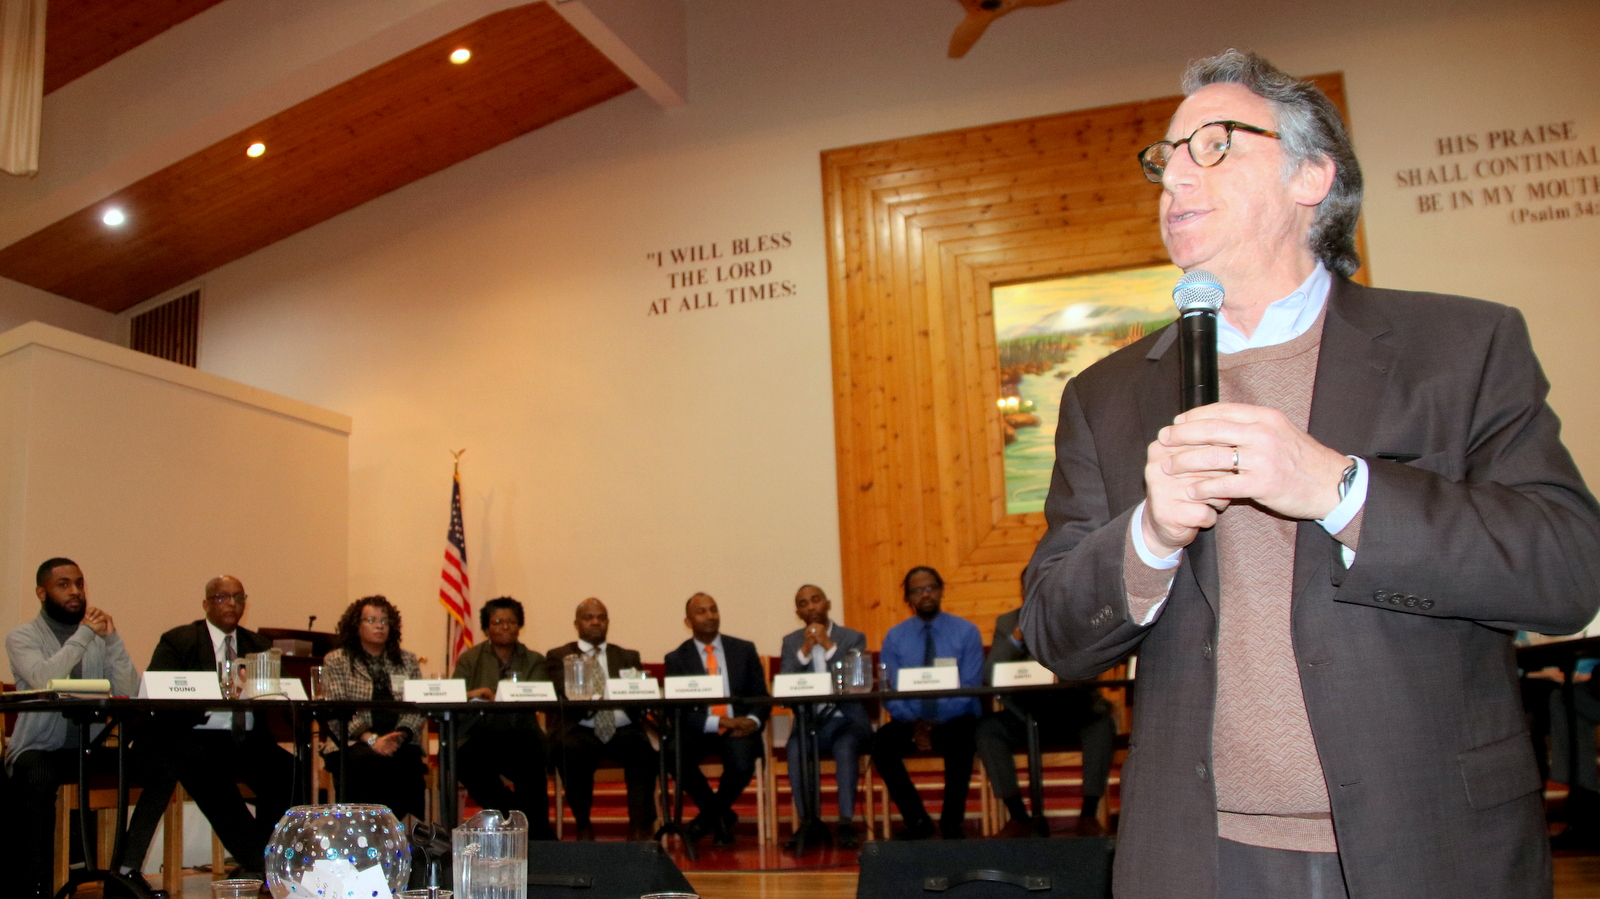 WYPR's Tom Hall, along with Dr. Sherri Parks, read questions to mayoral candidates. (Fern Shen)